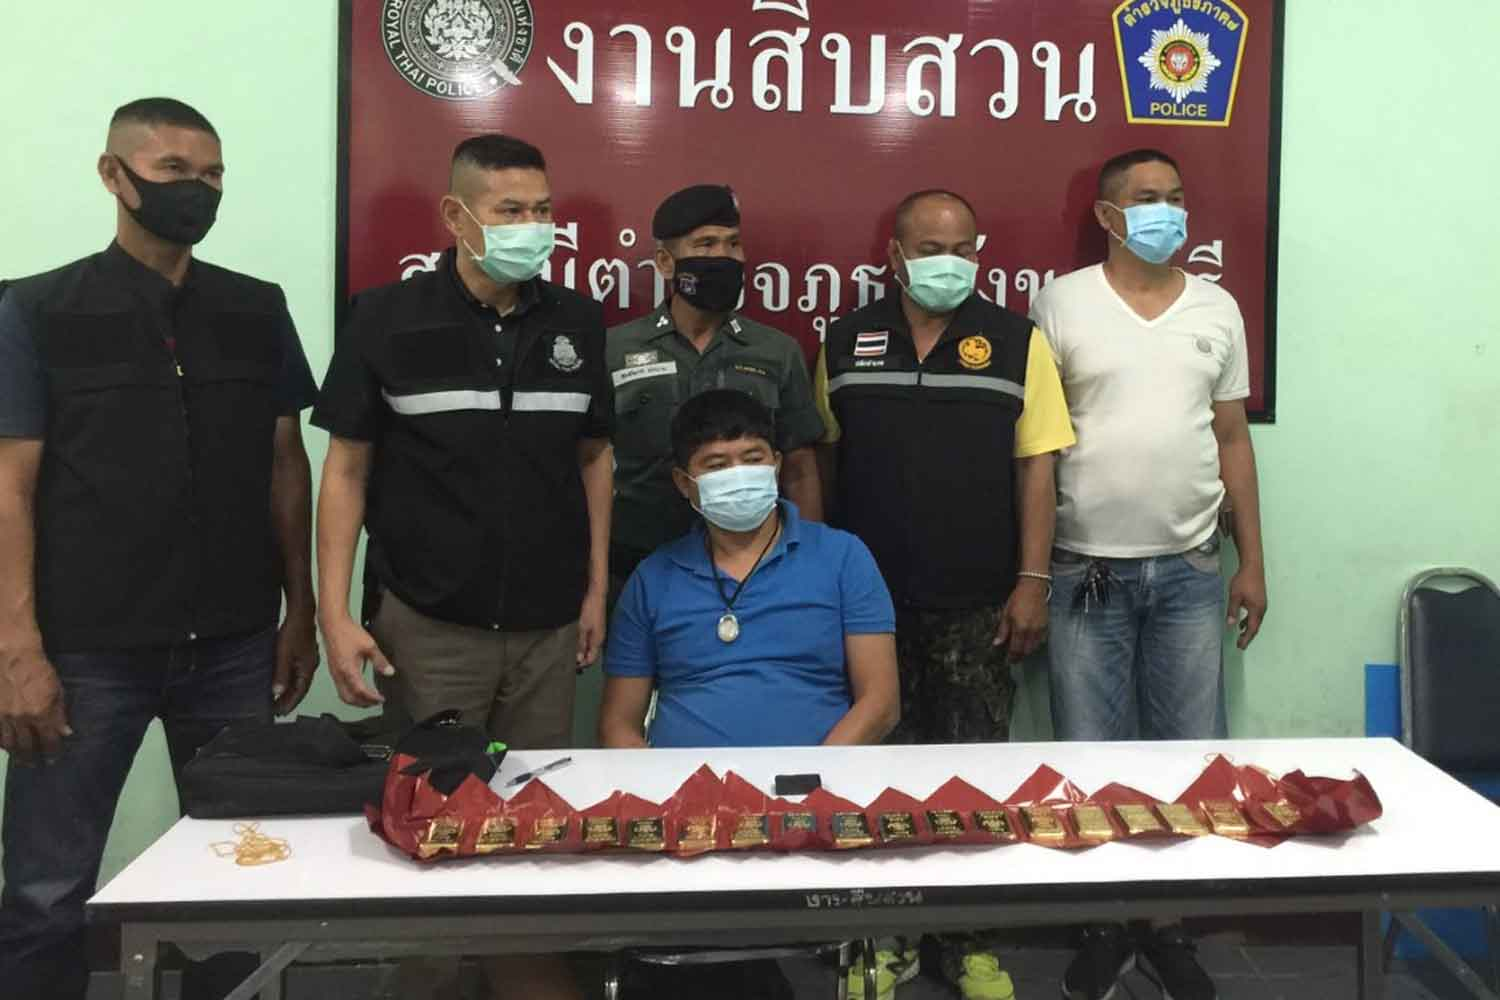 Police at Sangkhlaburi station pose for photos with the suspected smuggler and the 18 seized gold bars, on Tuesday. (Photo: Piyarat Chongcharoen)